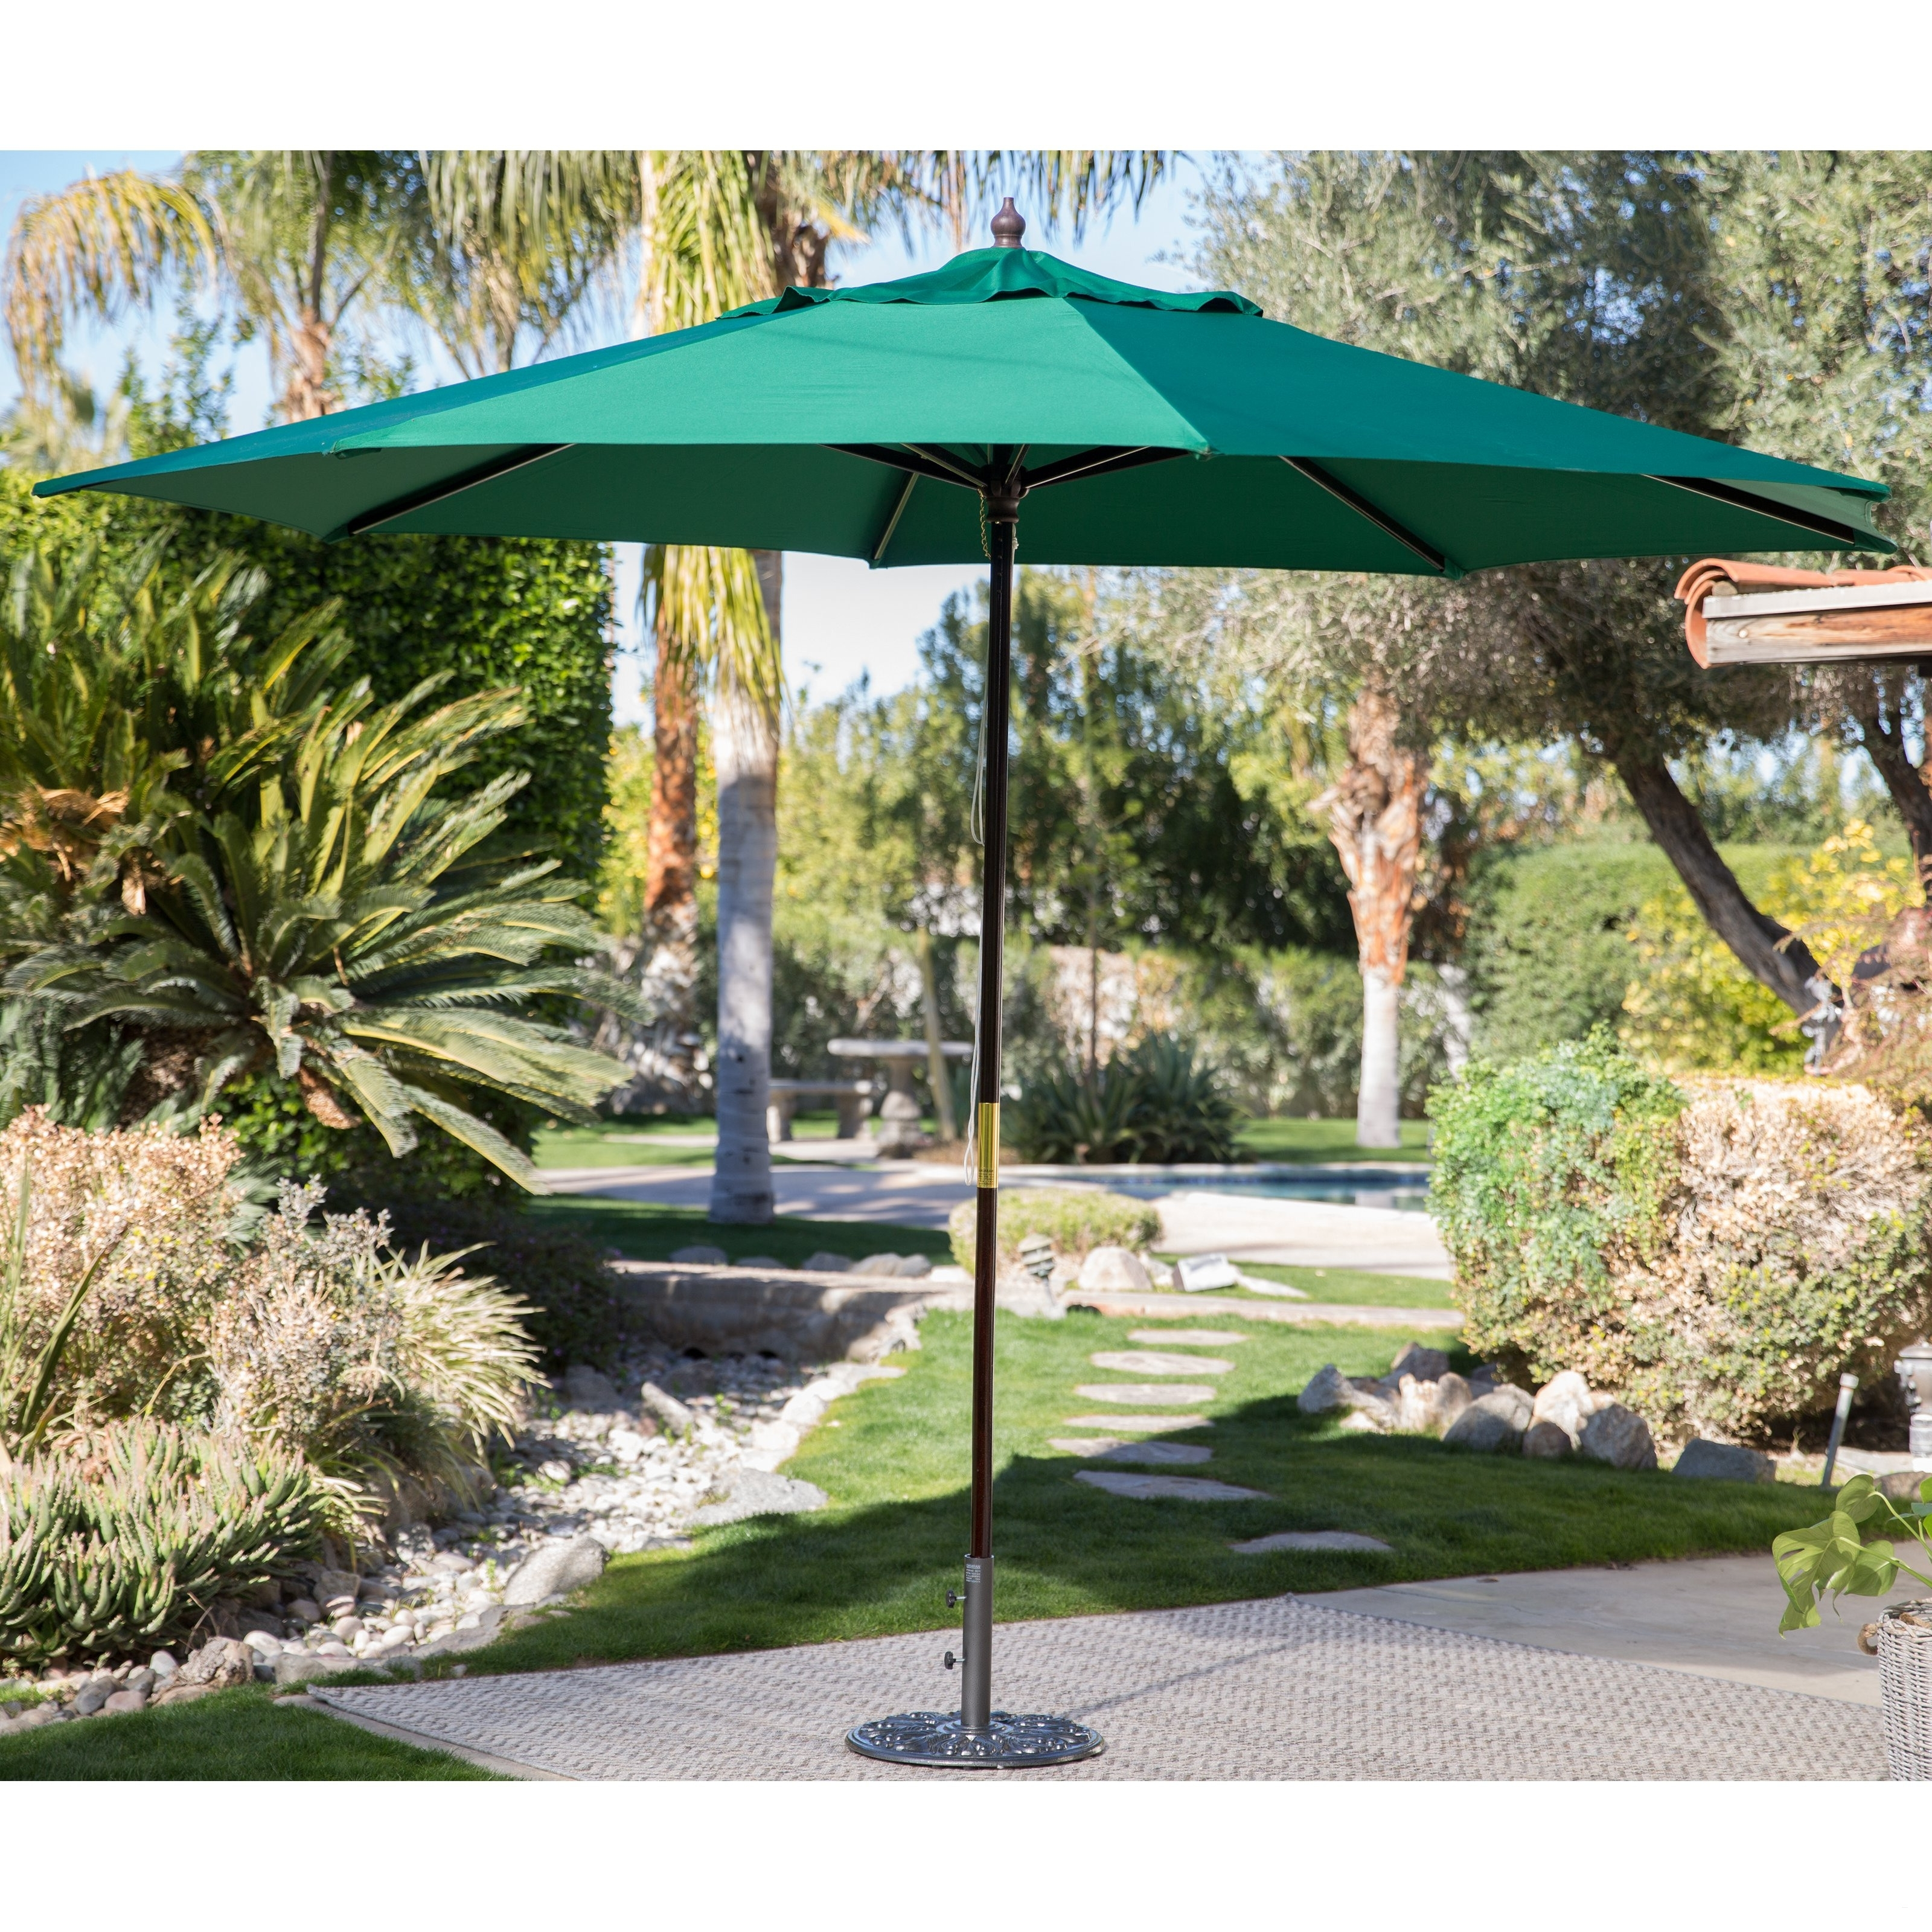 Sunbrella Patio Umbrellas Inside Well Liked Sunbrella Patio Umbrella – Popular For Families Who Have Been (View 16 of 20)